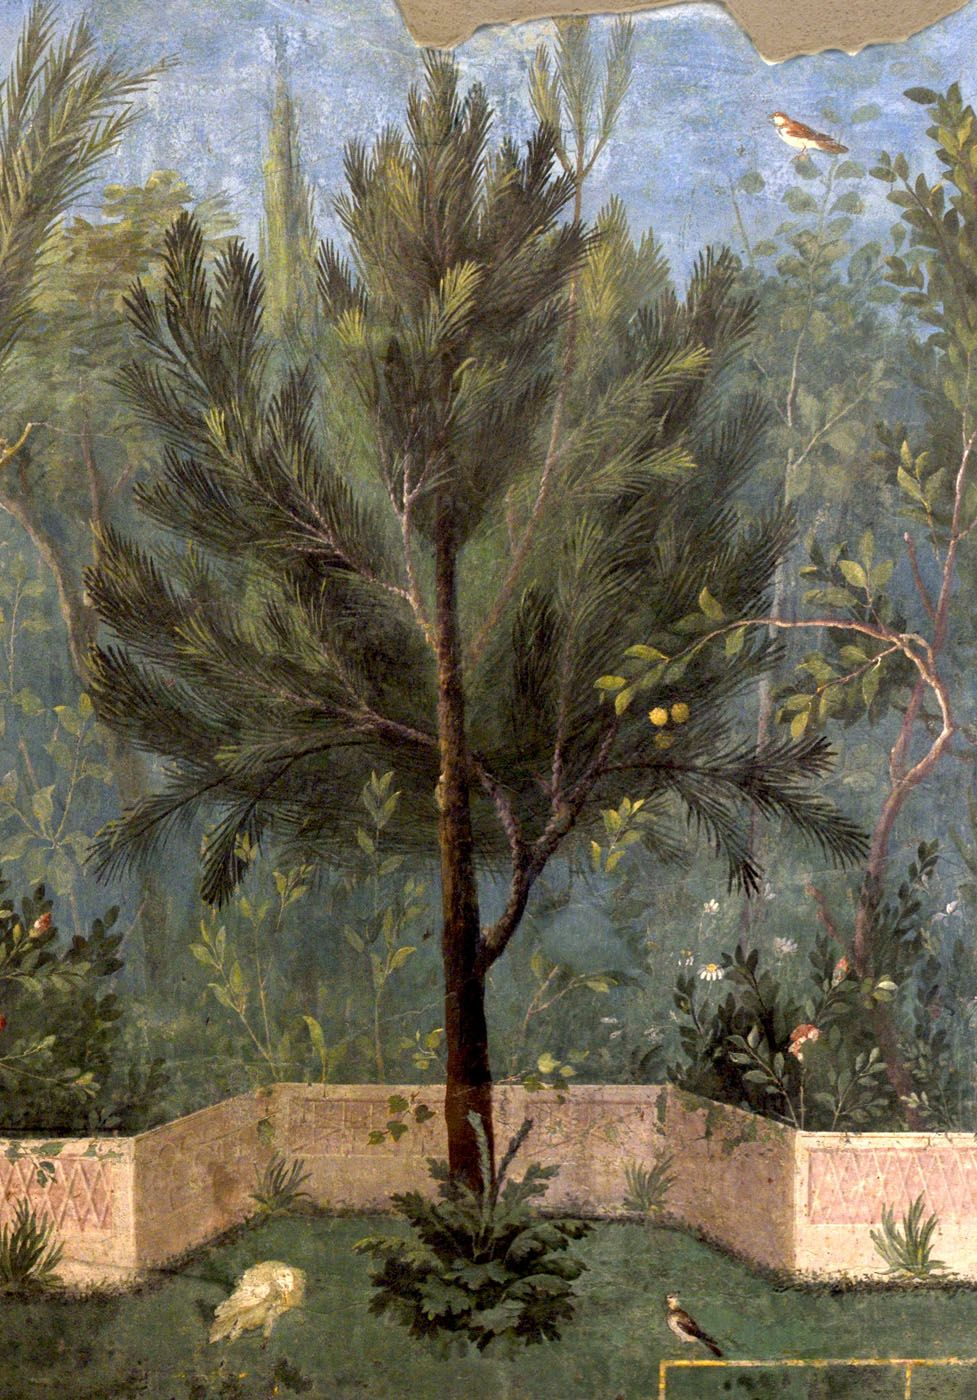 fresco painting wet paint on a dry wall interesting foliage detail